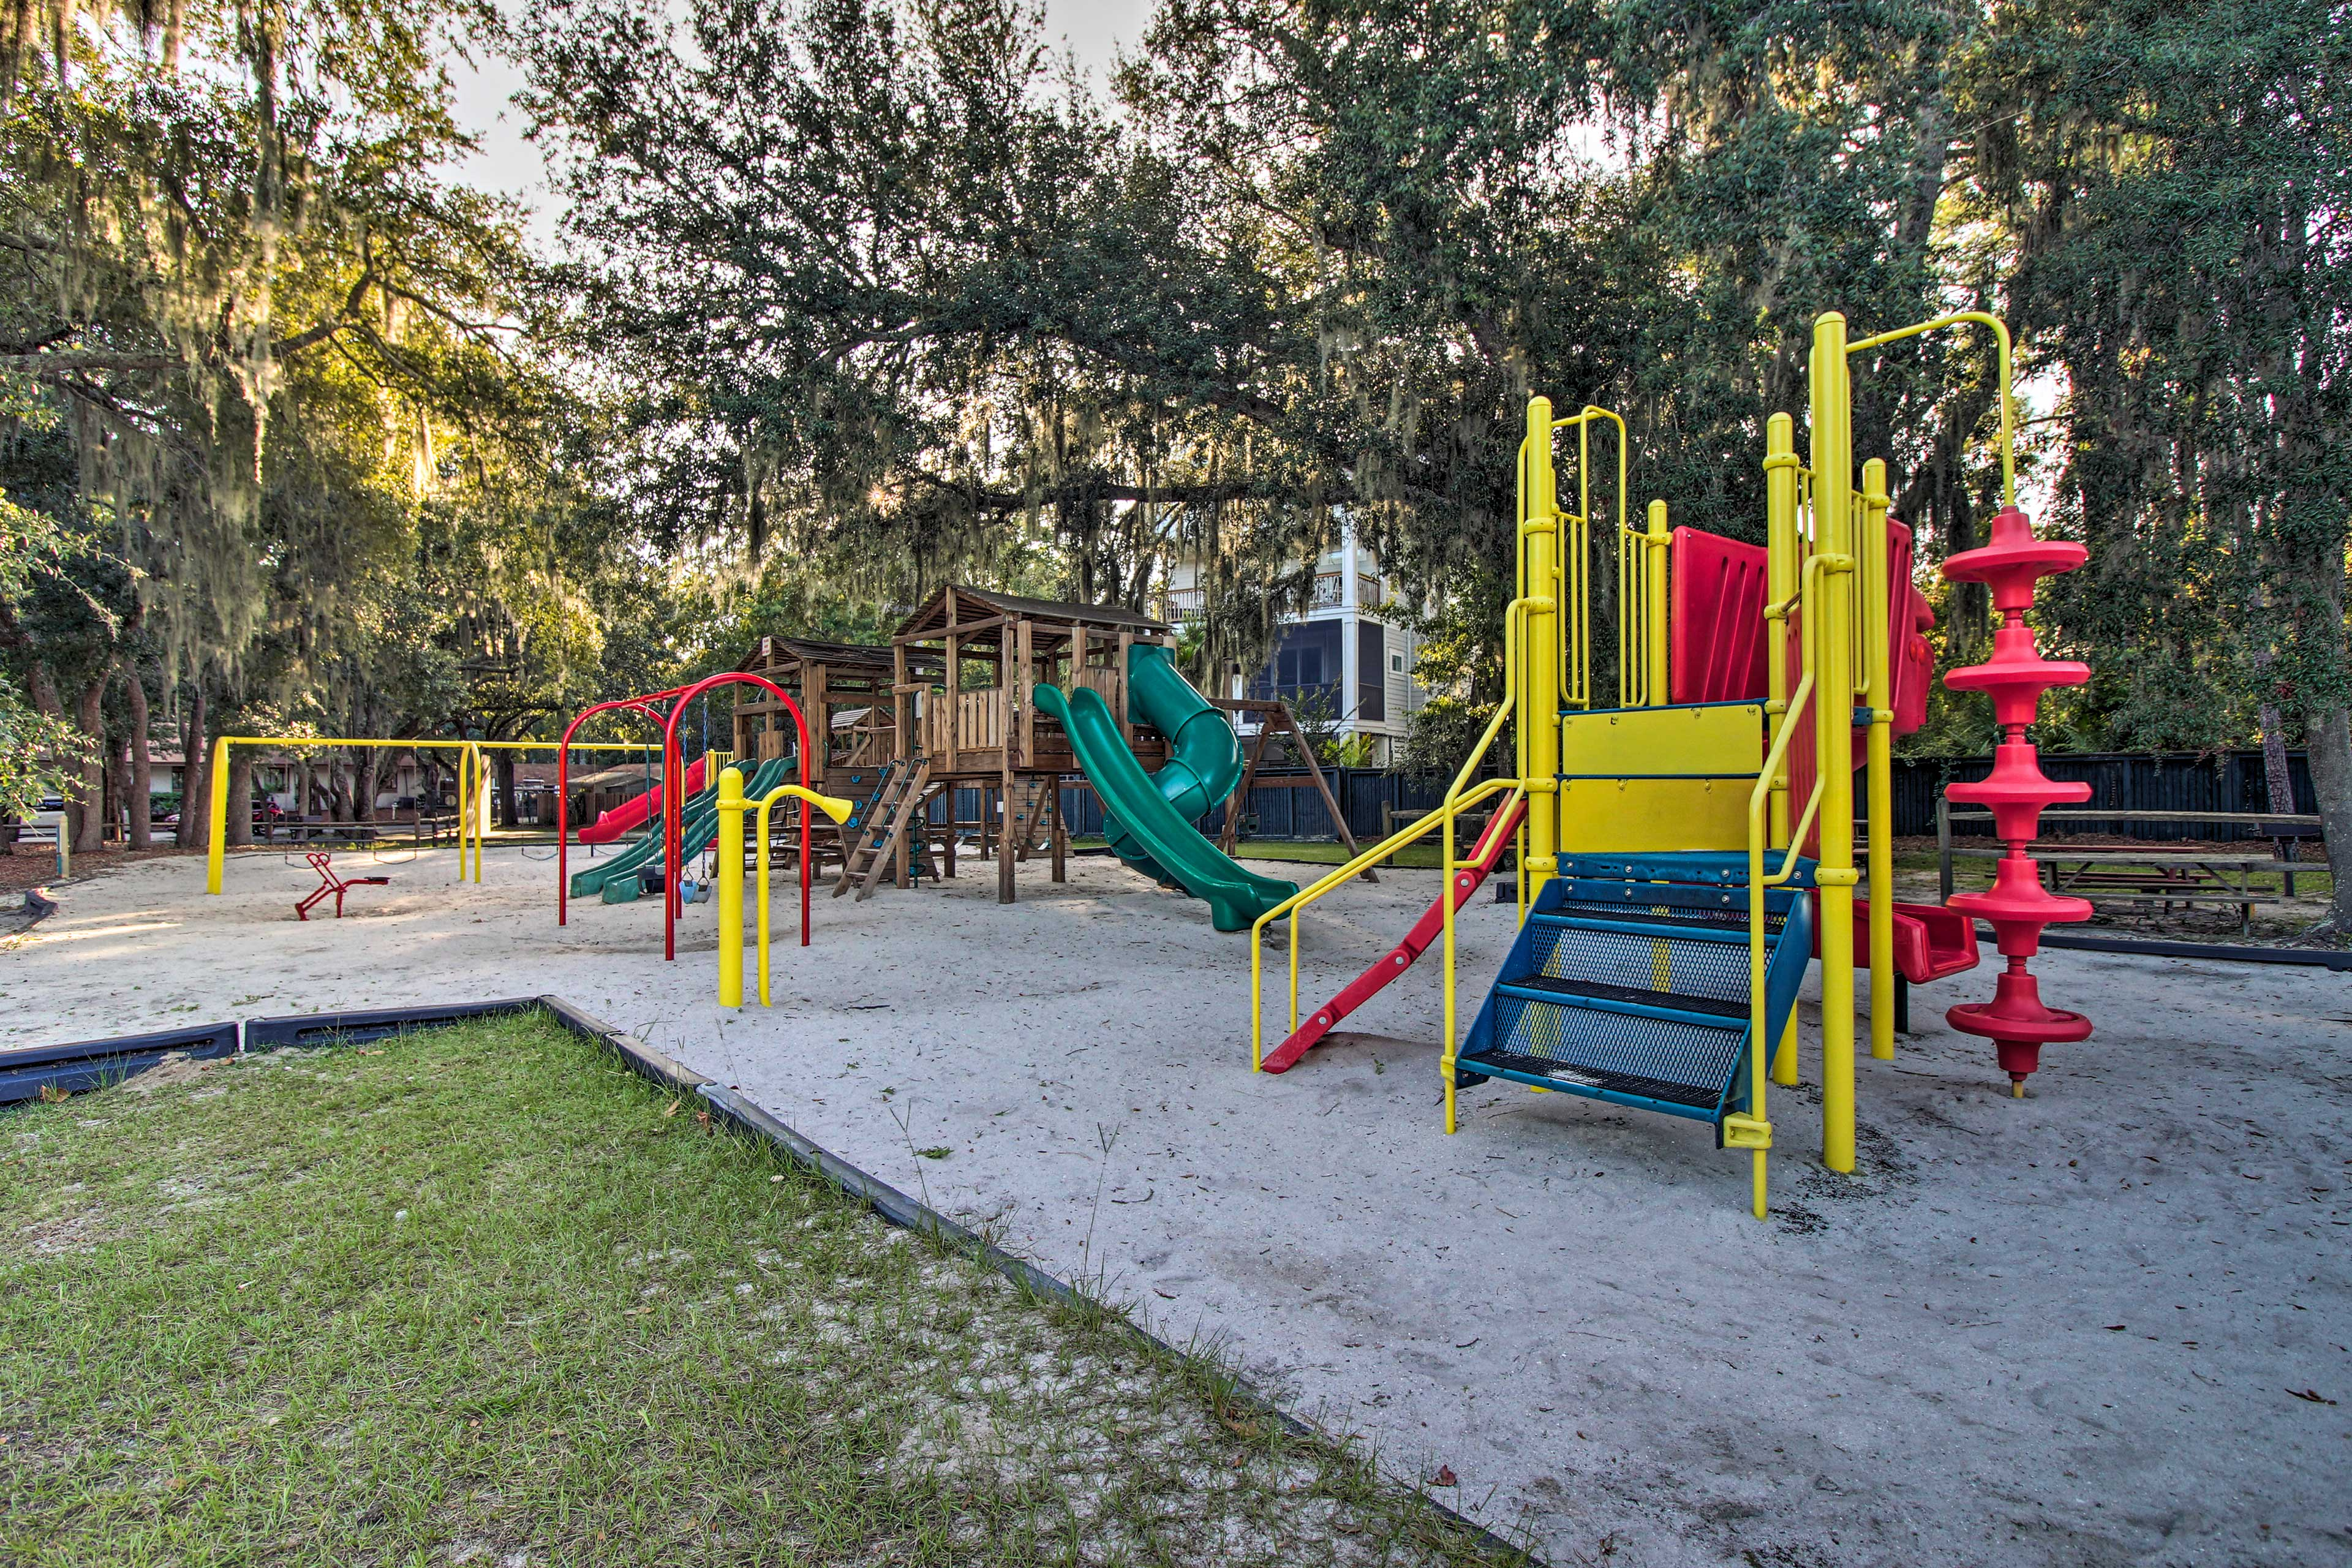 Spend the afternoon watching the kiddos romp around in the playground!